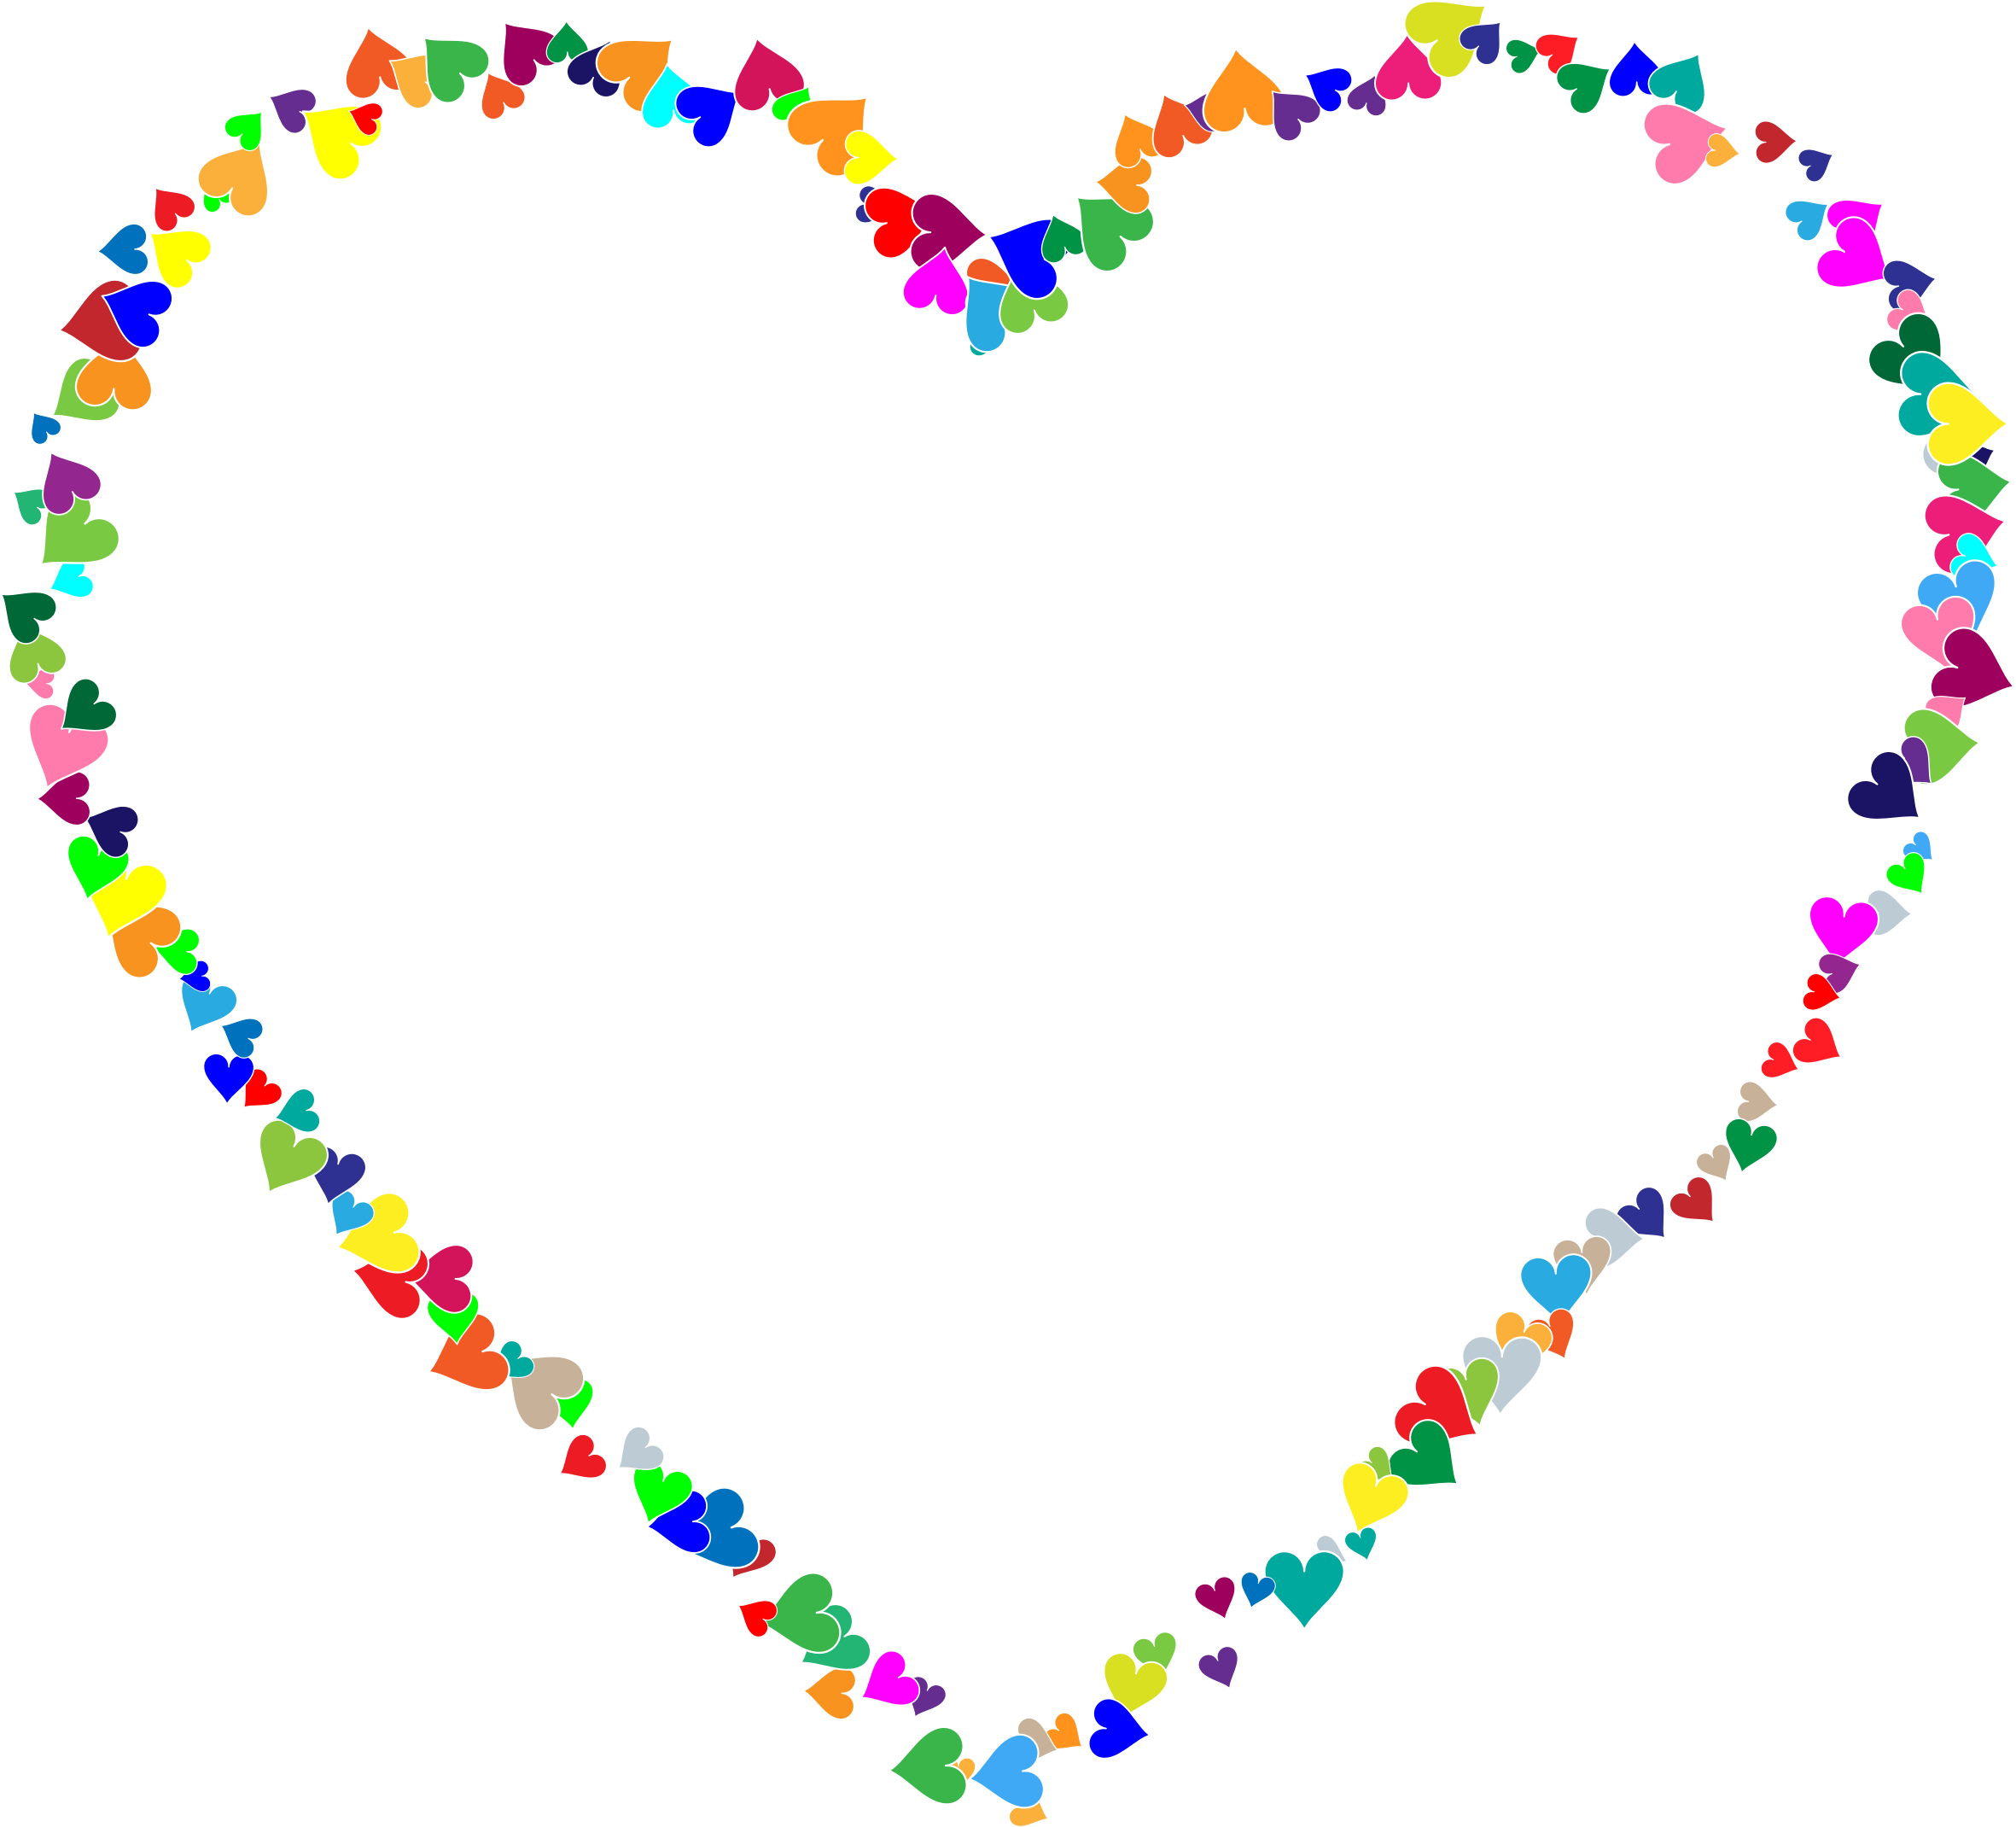 Frame clipart colorful. Hearts big image png